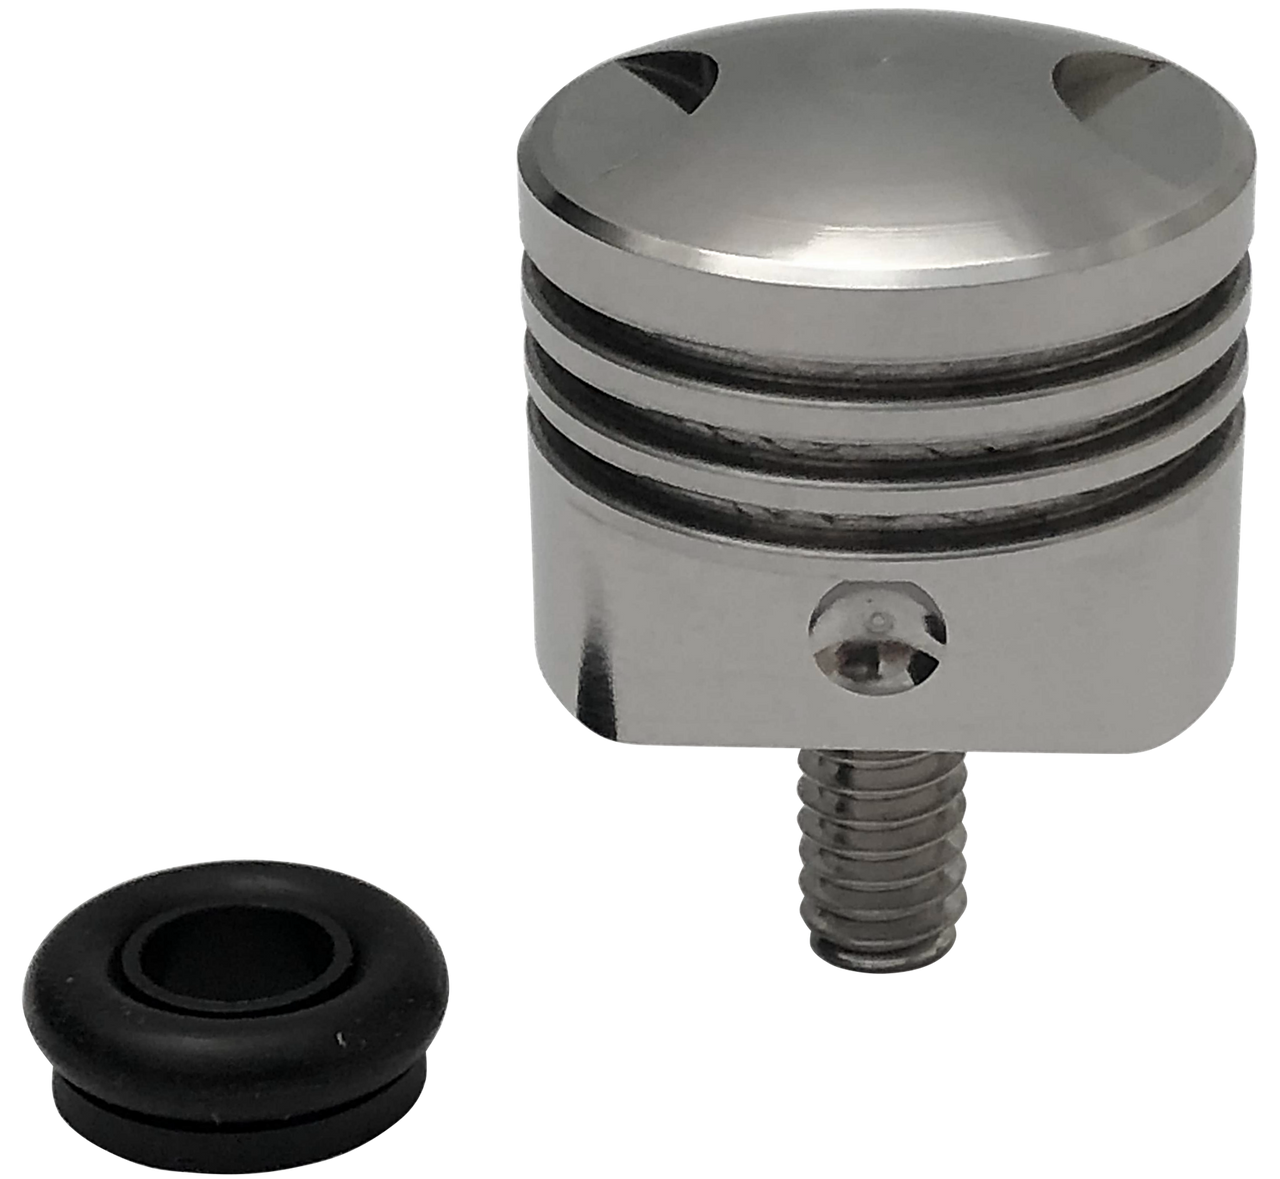 SMK-PSTN-P Seat Knob in Polished Stainless